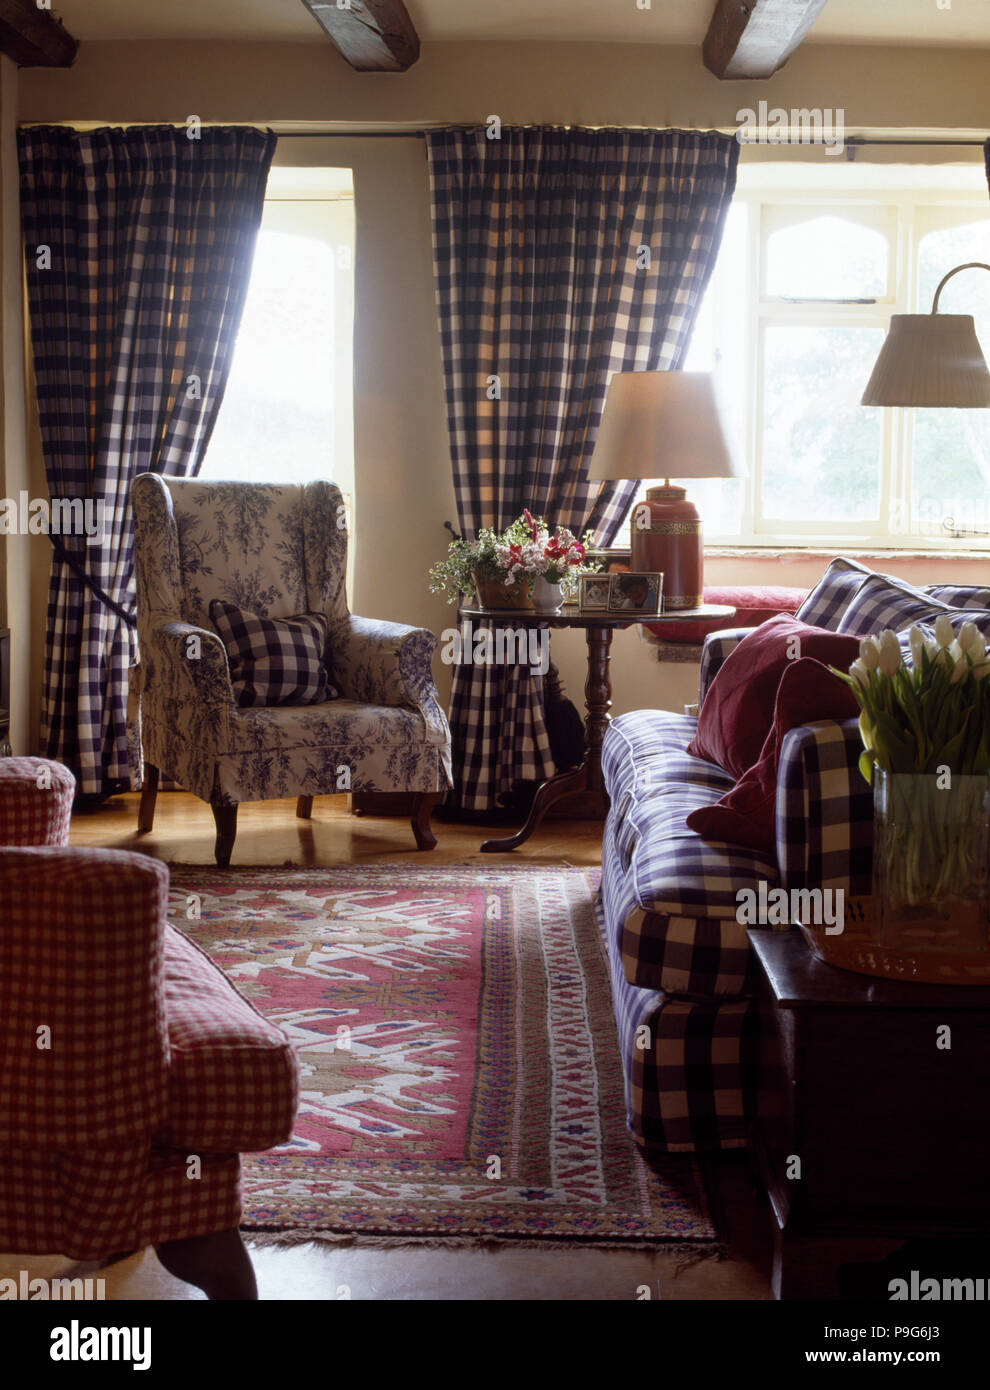 Pleasing Blue And White Checked Curtains And Sofa In A Country Machost Co Dining Chair Design Ideas Machostcouk